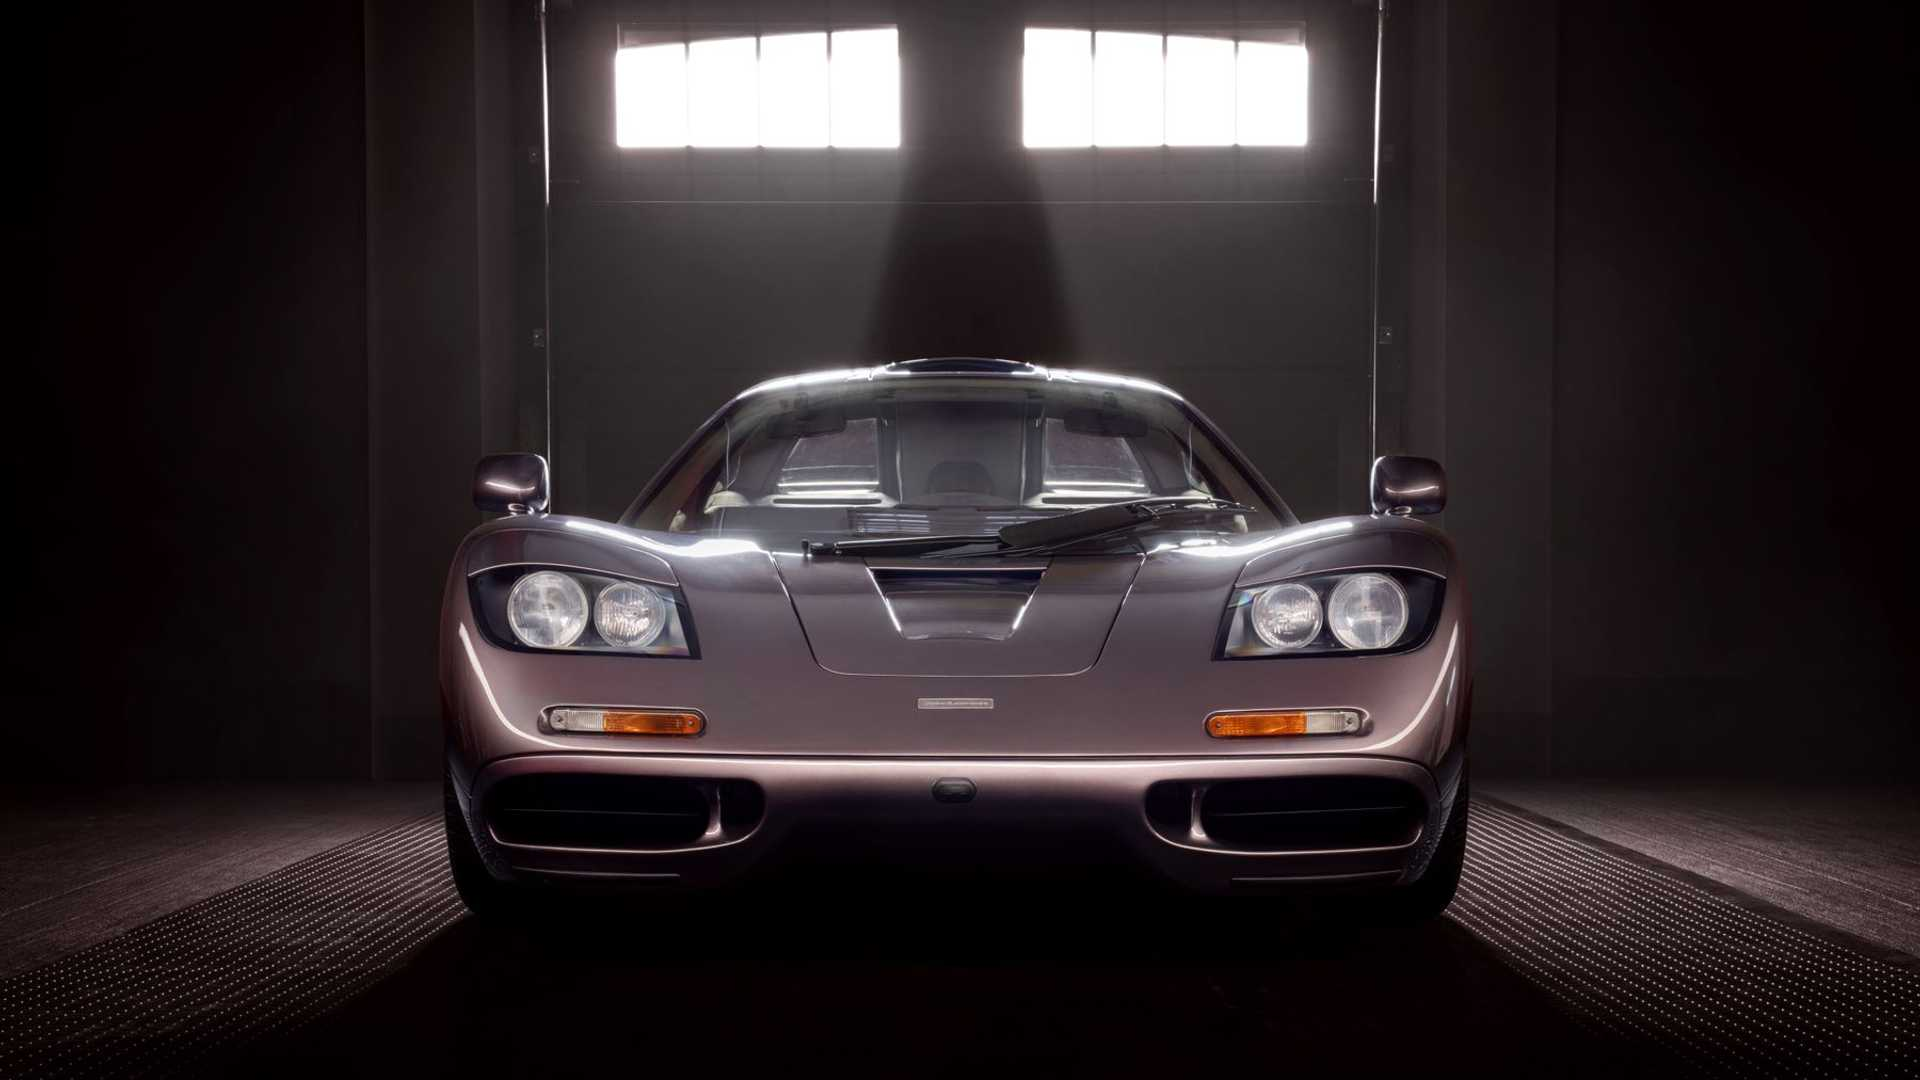 1995 McLaren F1 Gooding And Company Auction 2020 Nose